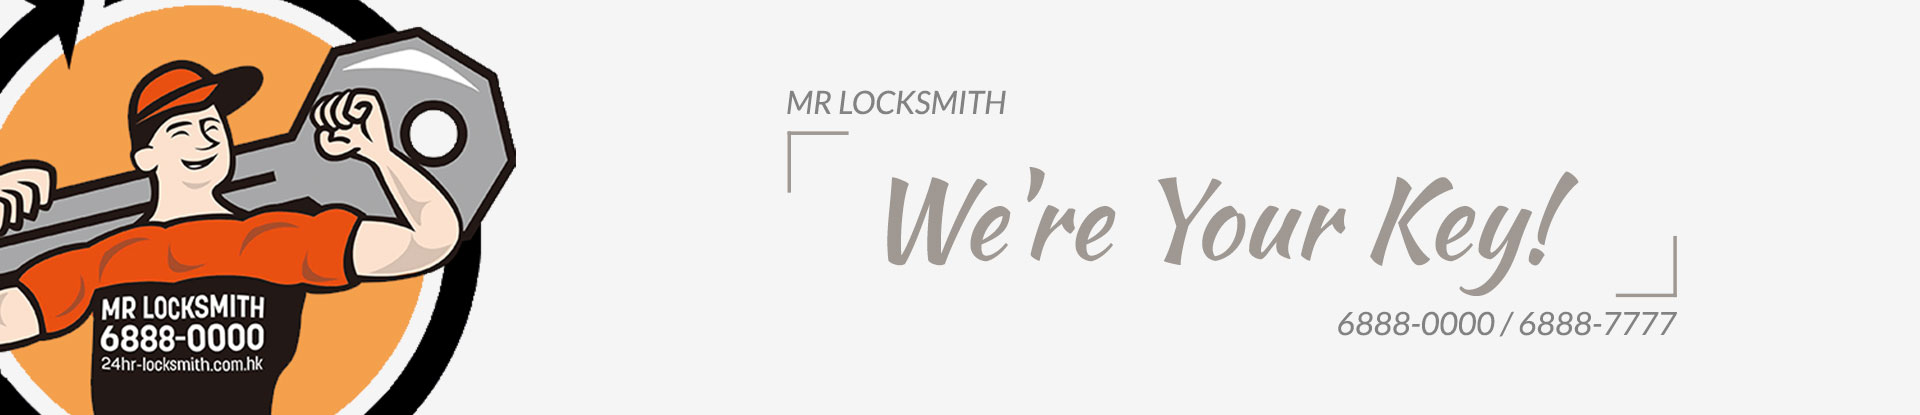 Wong Chuk Hang Locksmith -Locksmith in Wong Chuk Hang